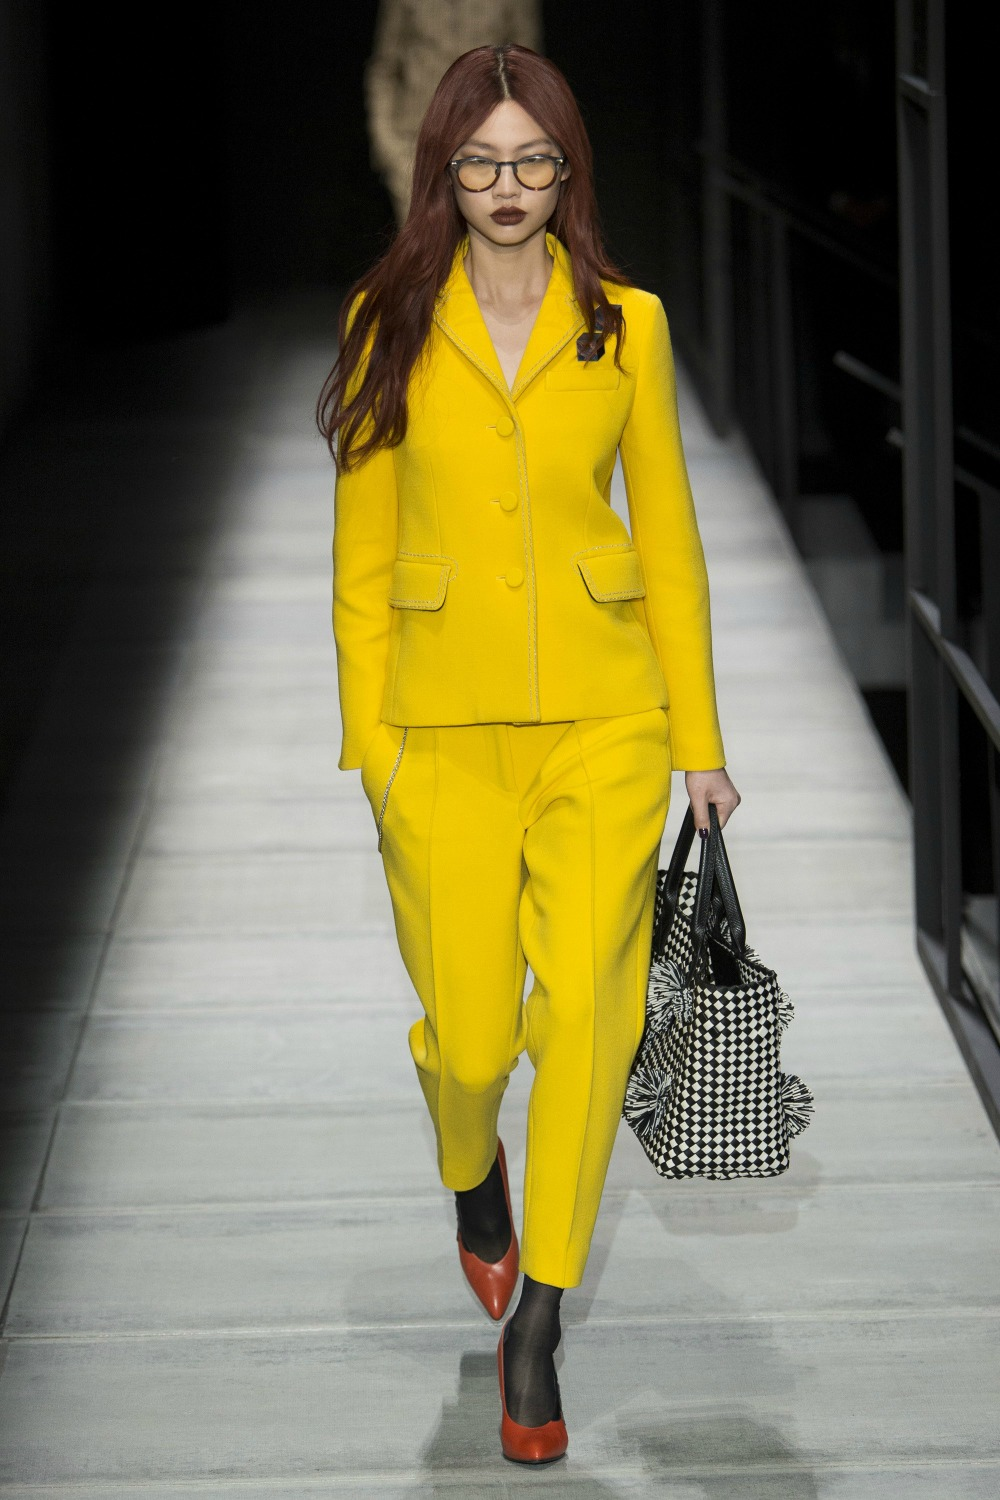 Yellow Fall Fashion Trend on the Bottega Veneta Runway at New York Fashion Week #FallFashion #FallTrends #Runway #FashionWeek #NYFW #FallStyle #FallTrends